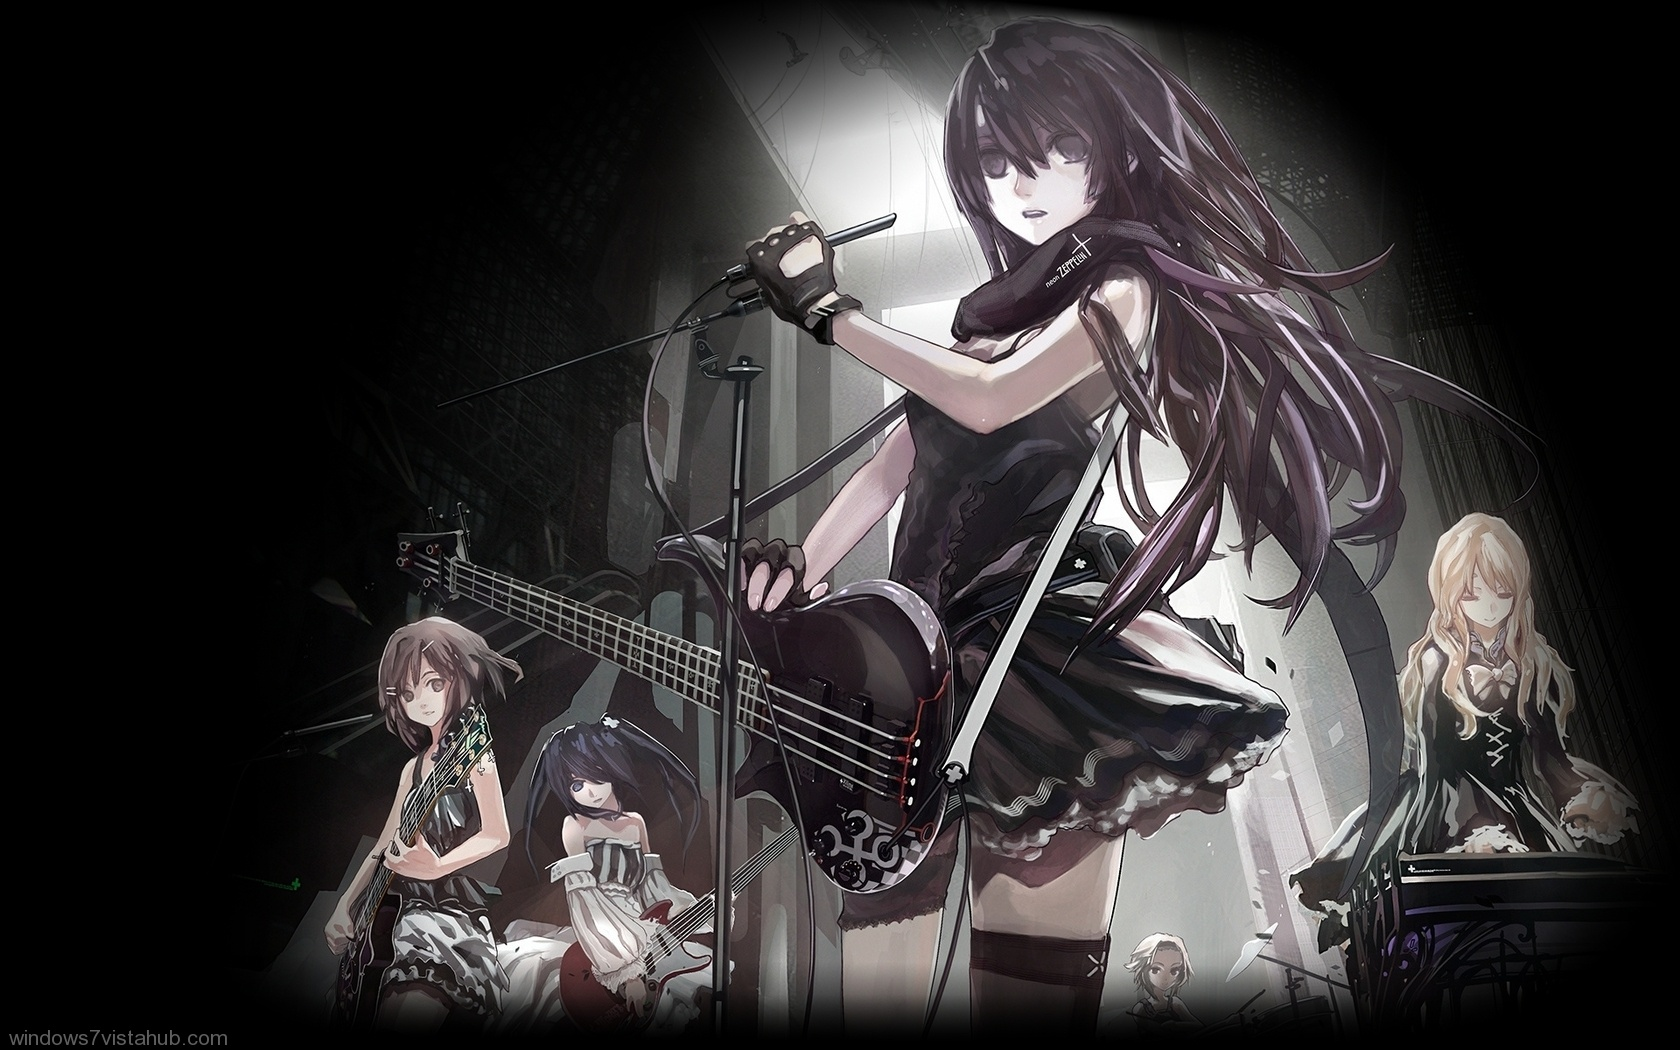 Free Download Rock Band Roll Girls Anime 1765 Wallpaper Wallpaper Hd